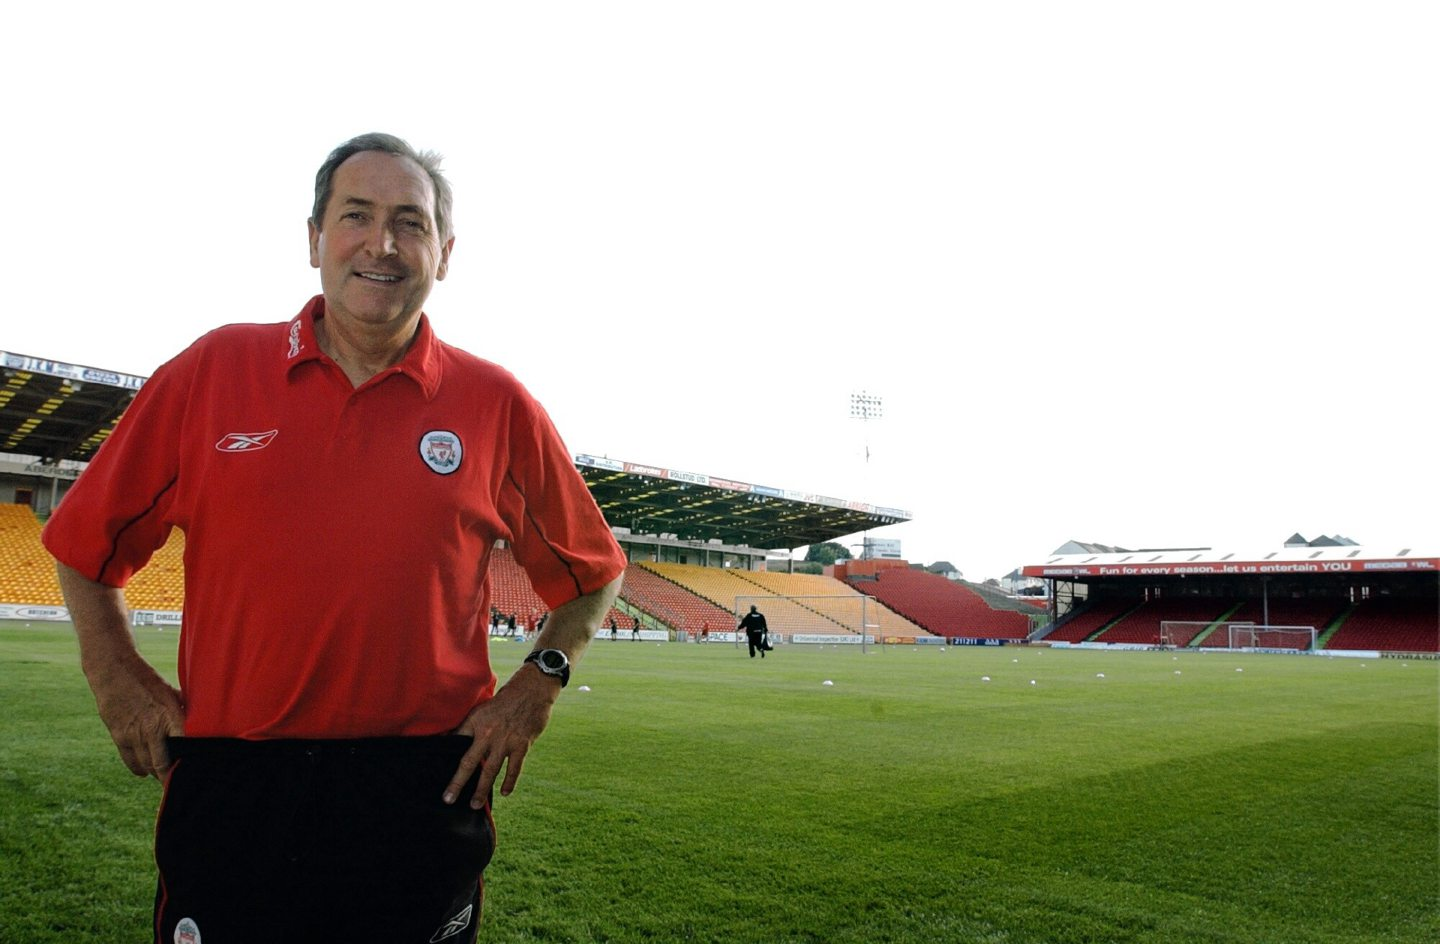 Gerard Houllier on the Pittodrie pitch.